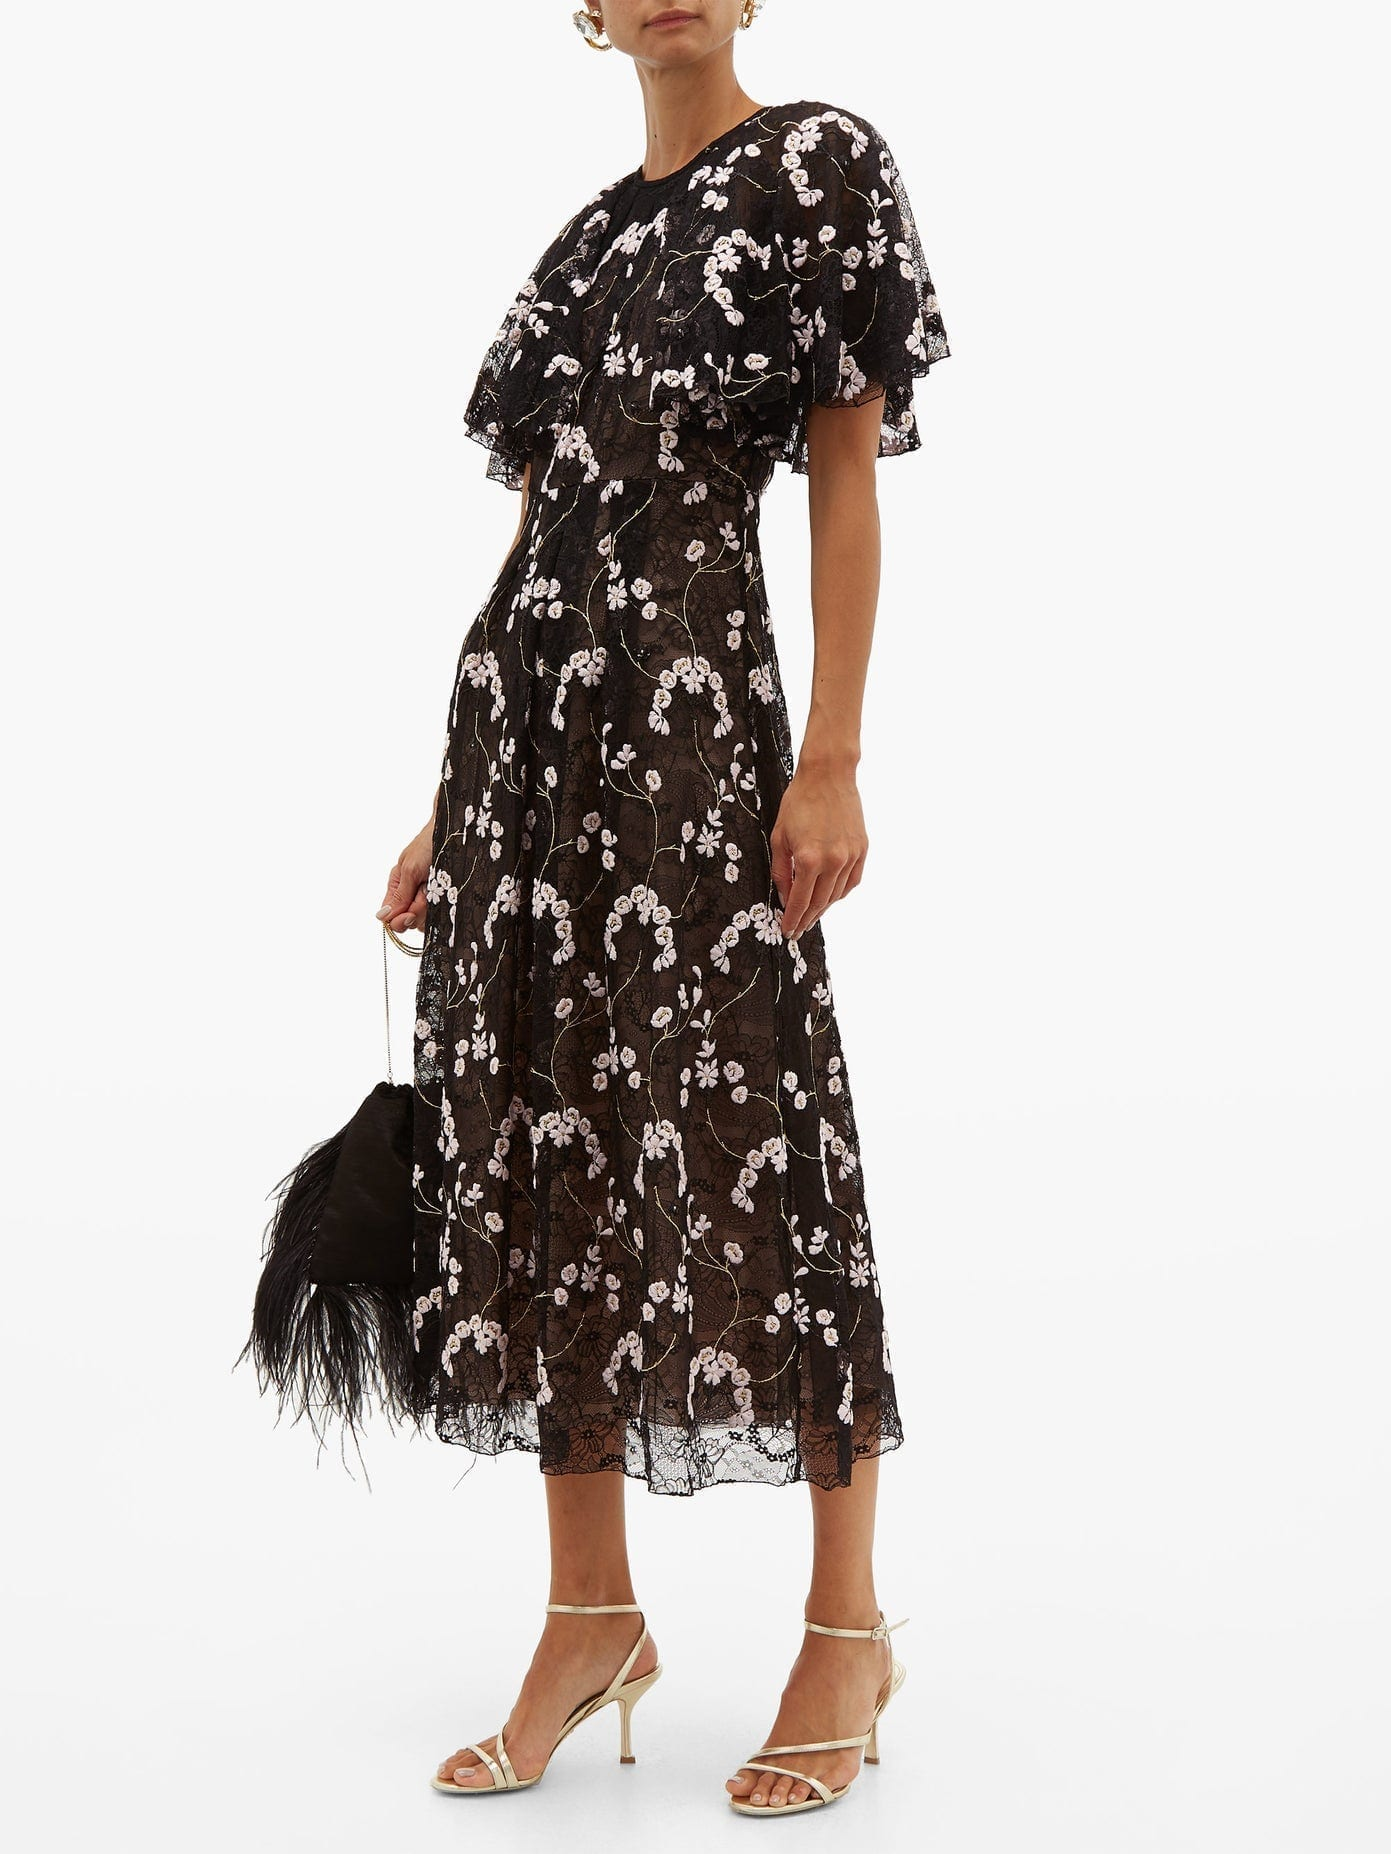 GIAMBATTISTA VALLI Floral-Embroidered Chantilly-Lace Dress